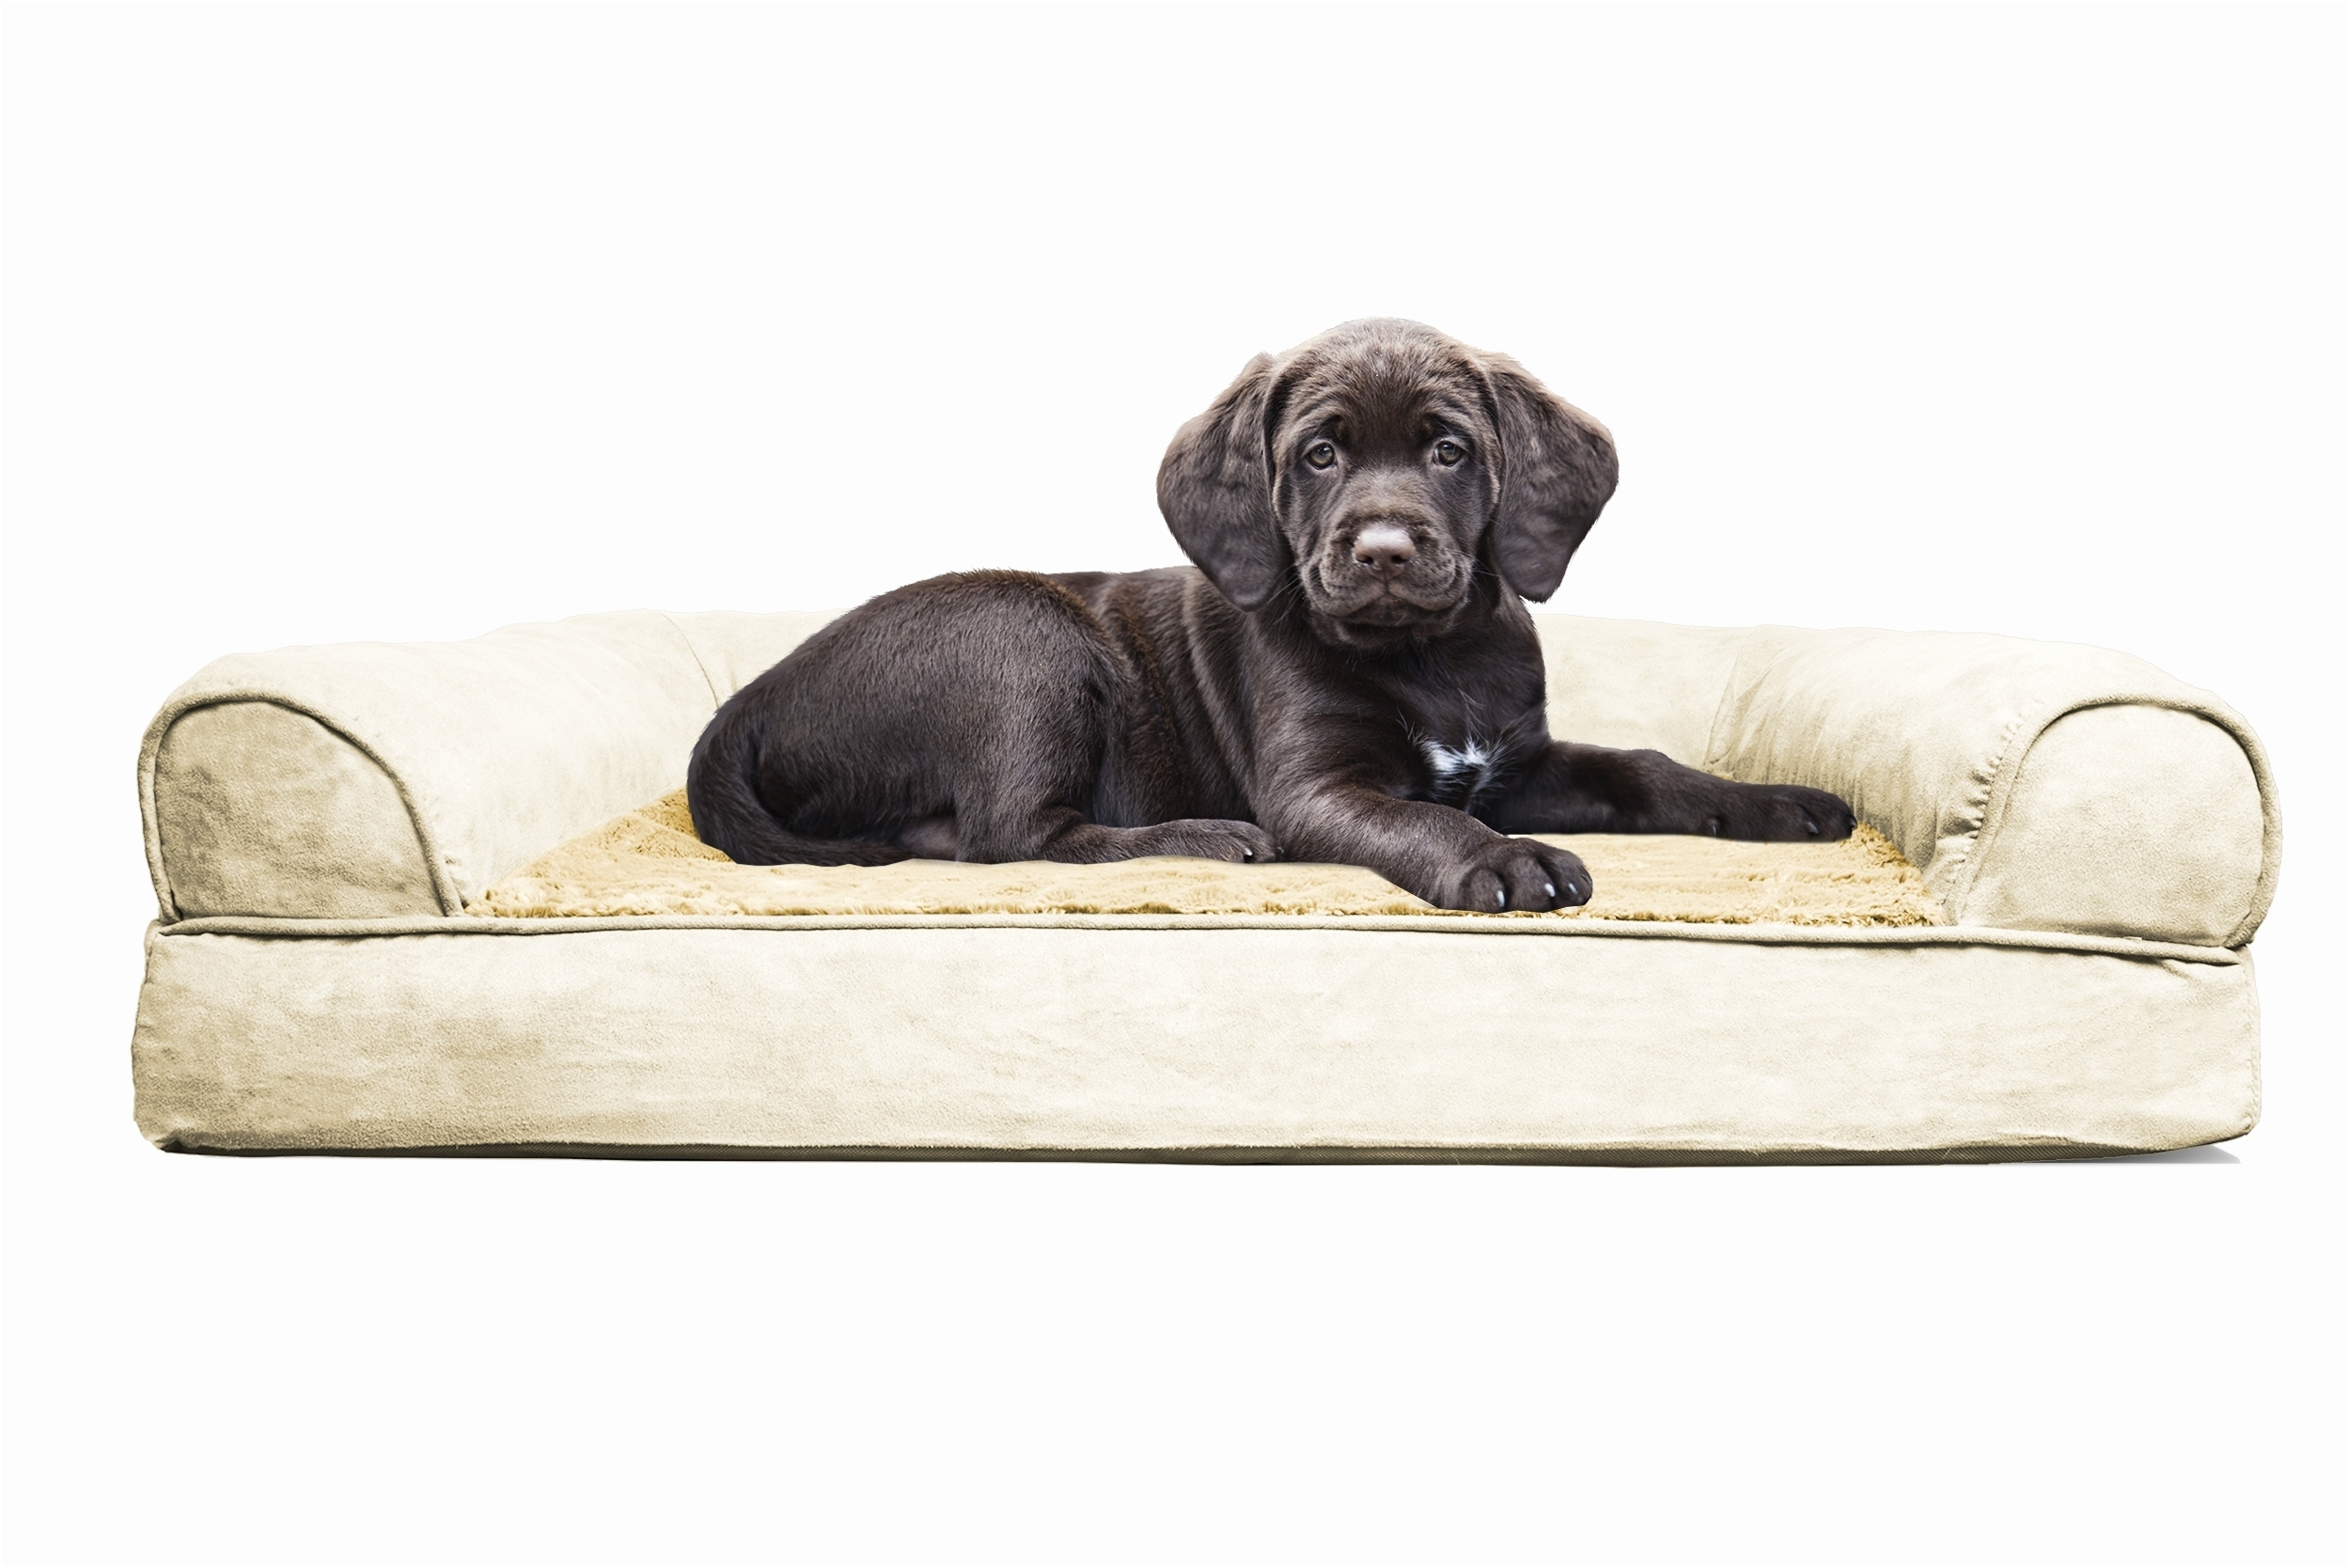 Recent Sofas : Leather Dog Couch Small Pet Sofa Leather Dog Chair Dog Pertaining To Dog Chaise Lounges (View 6 of 15)